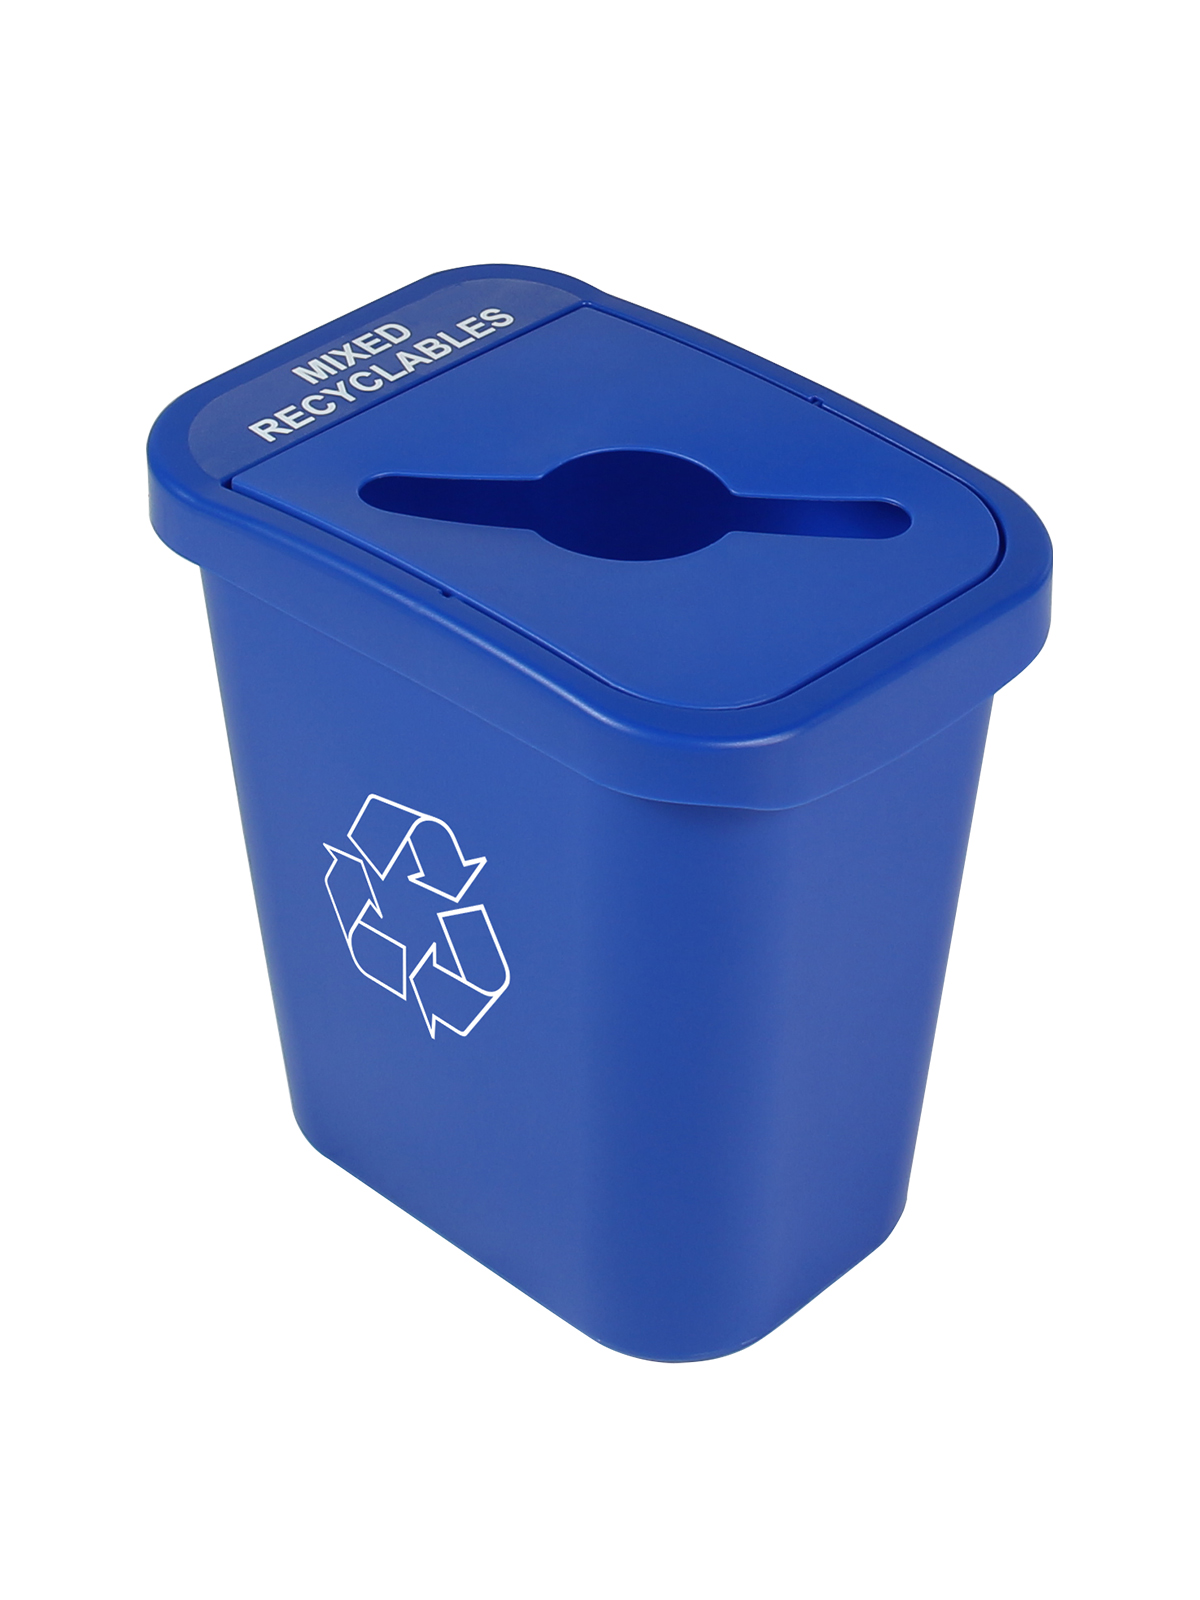 BILLI BOX - SINGLE 7 G - MIXED - BLUE - MIXED RECYCLABLES title=